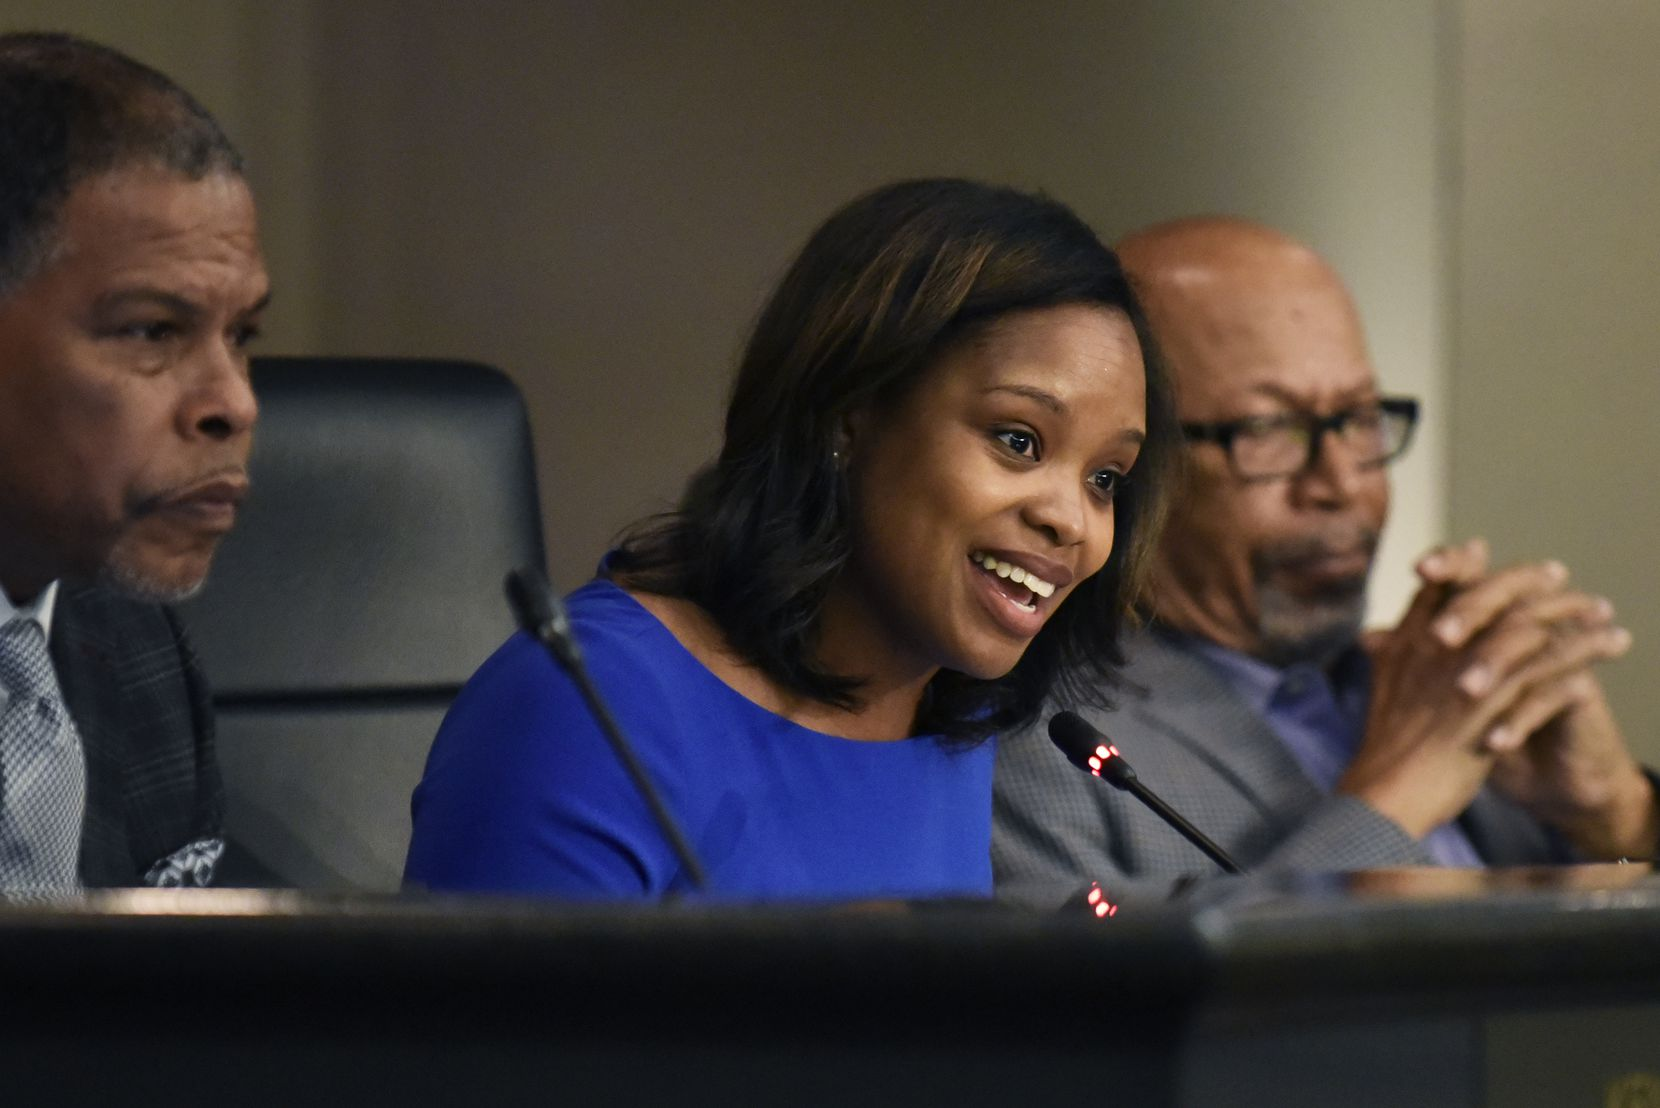 Council member Candice Quarles, shown during a city council meeting in April, may have benefited financially from her husband's crime.